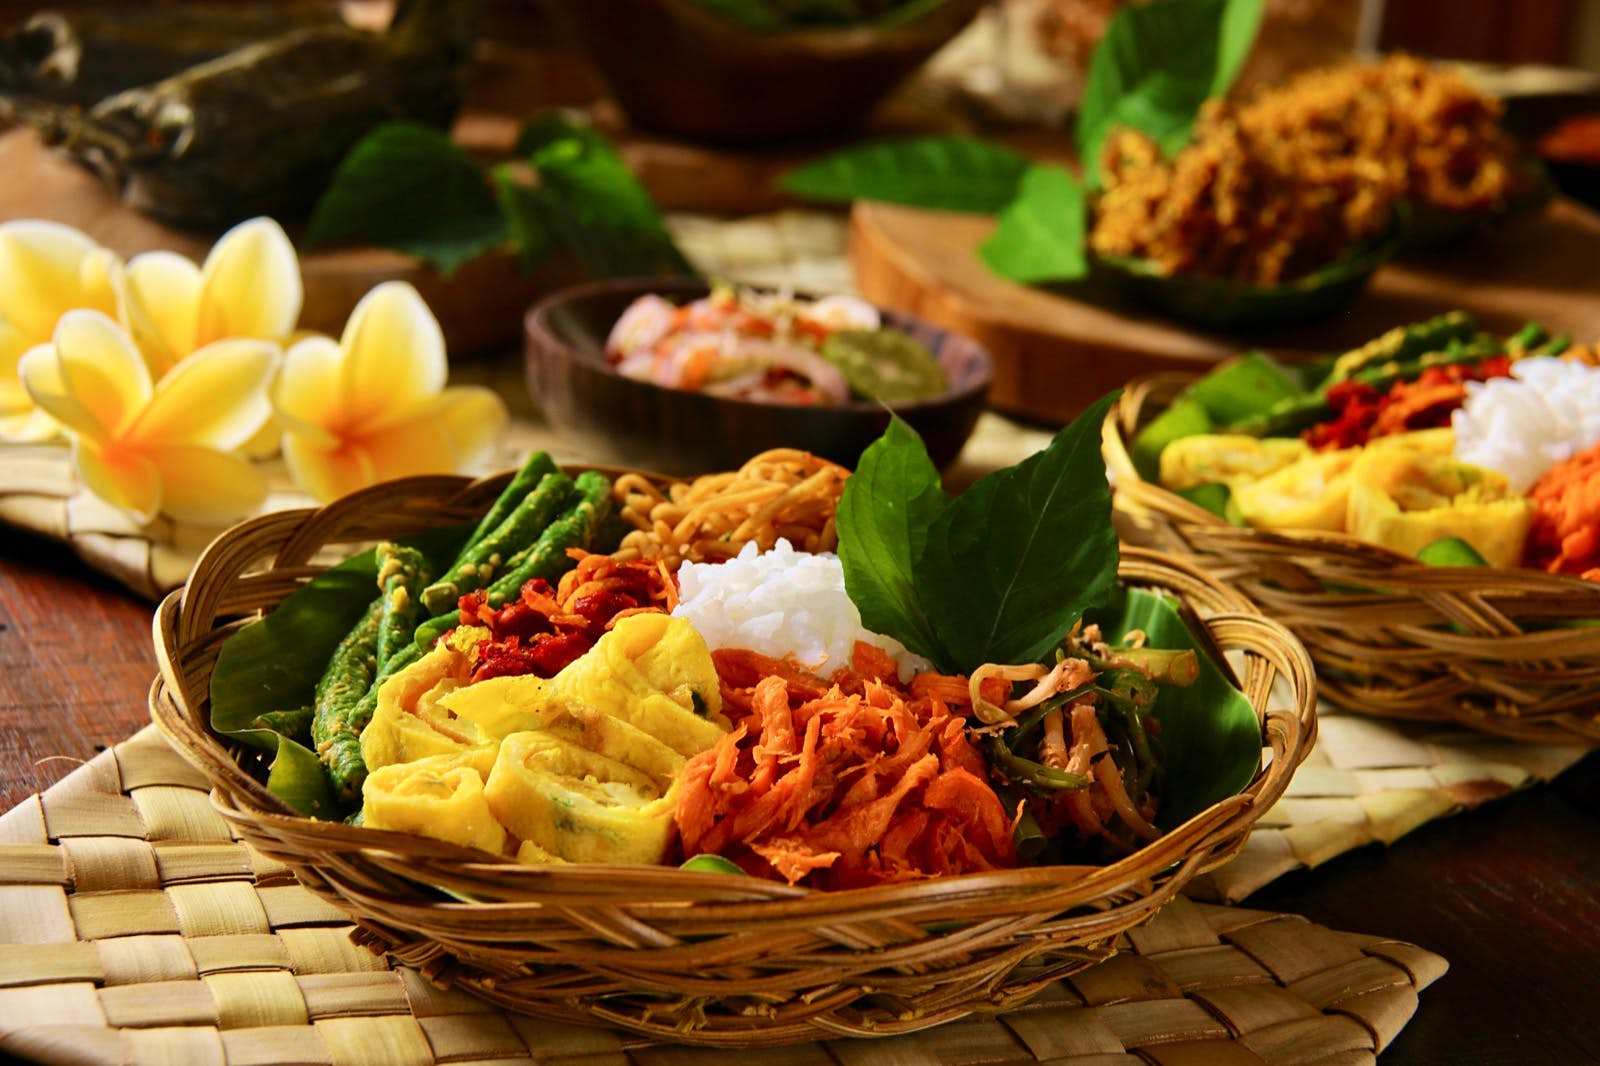 A popular Balinese meal of rice with variety of vegetables in a wooden bowls sitting on a bamboo place mats. Flowers are placed around the bowls of food. Dining in Bali can sometimes look like a work of art.